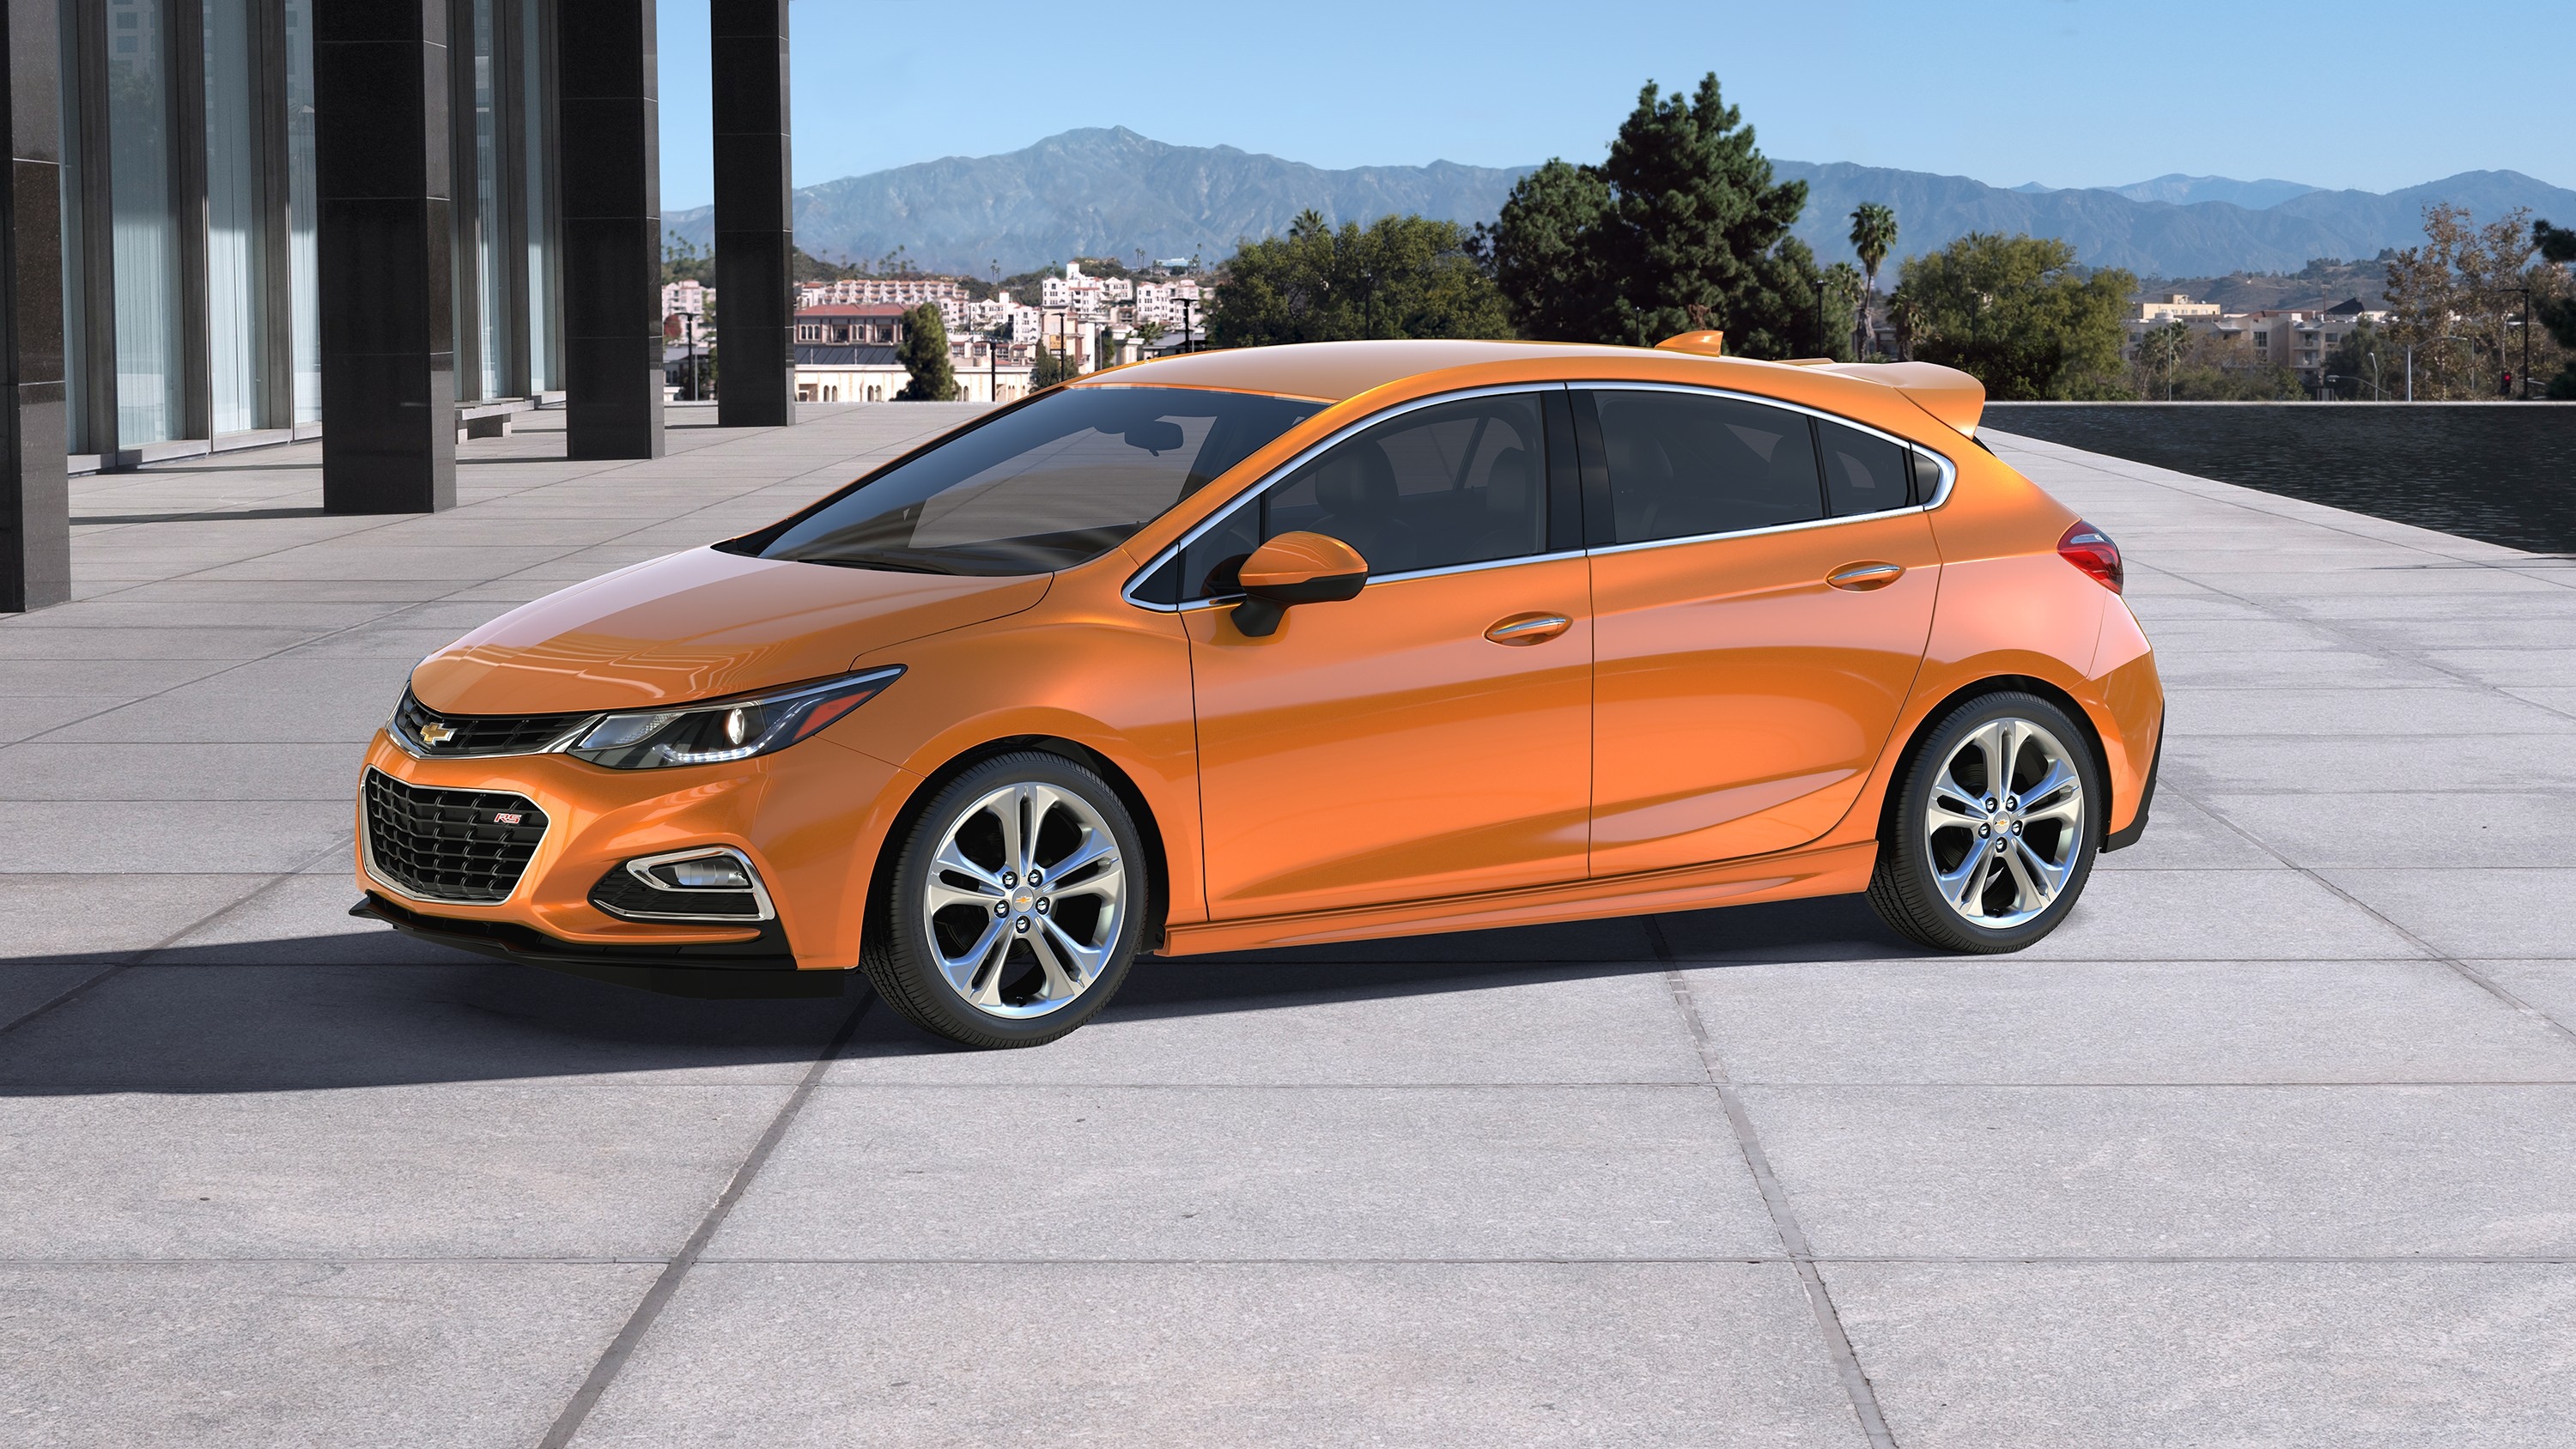 With The Advent Of 2017 Chevrolet Cruze Hatchback General Motors Let It Slip That Yes Sel Will Make A Comeback In Compact Segment